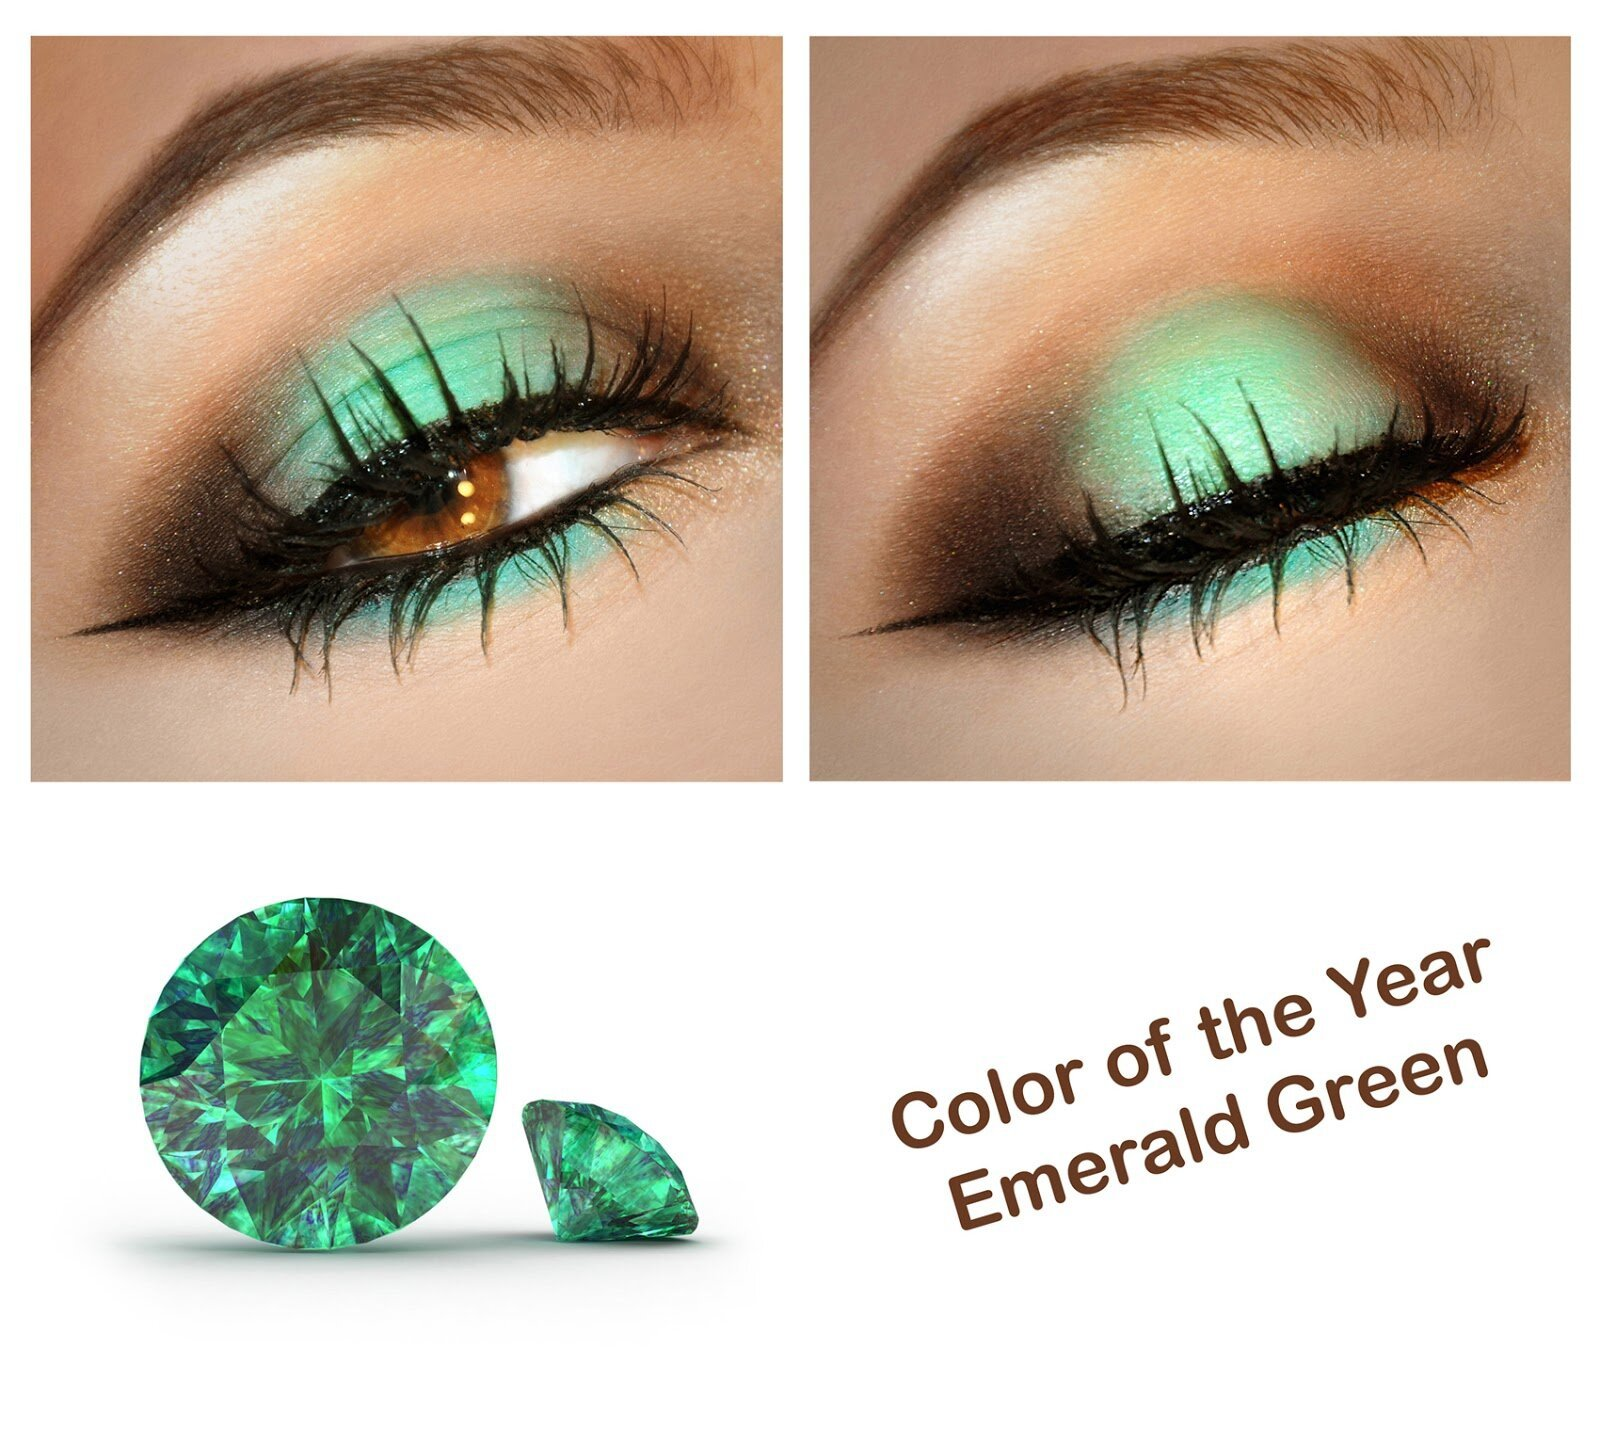 Hottest 2013 Beauty Trends!